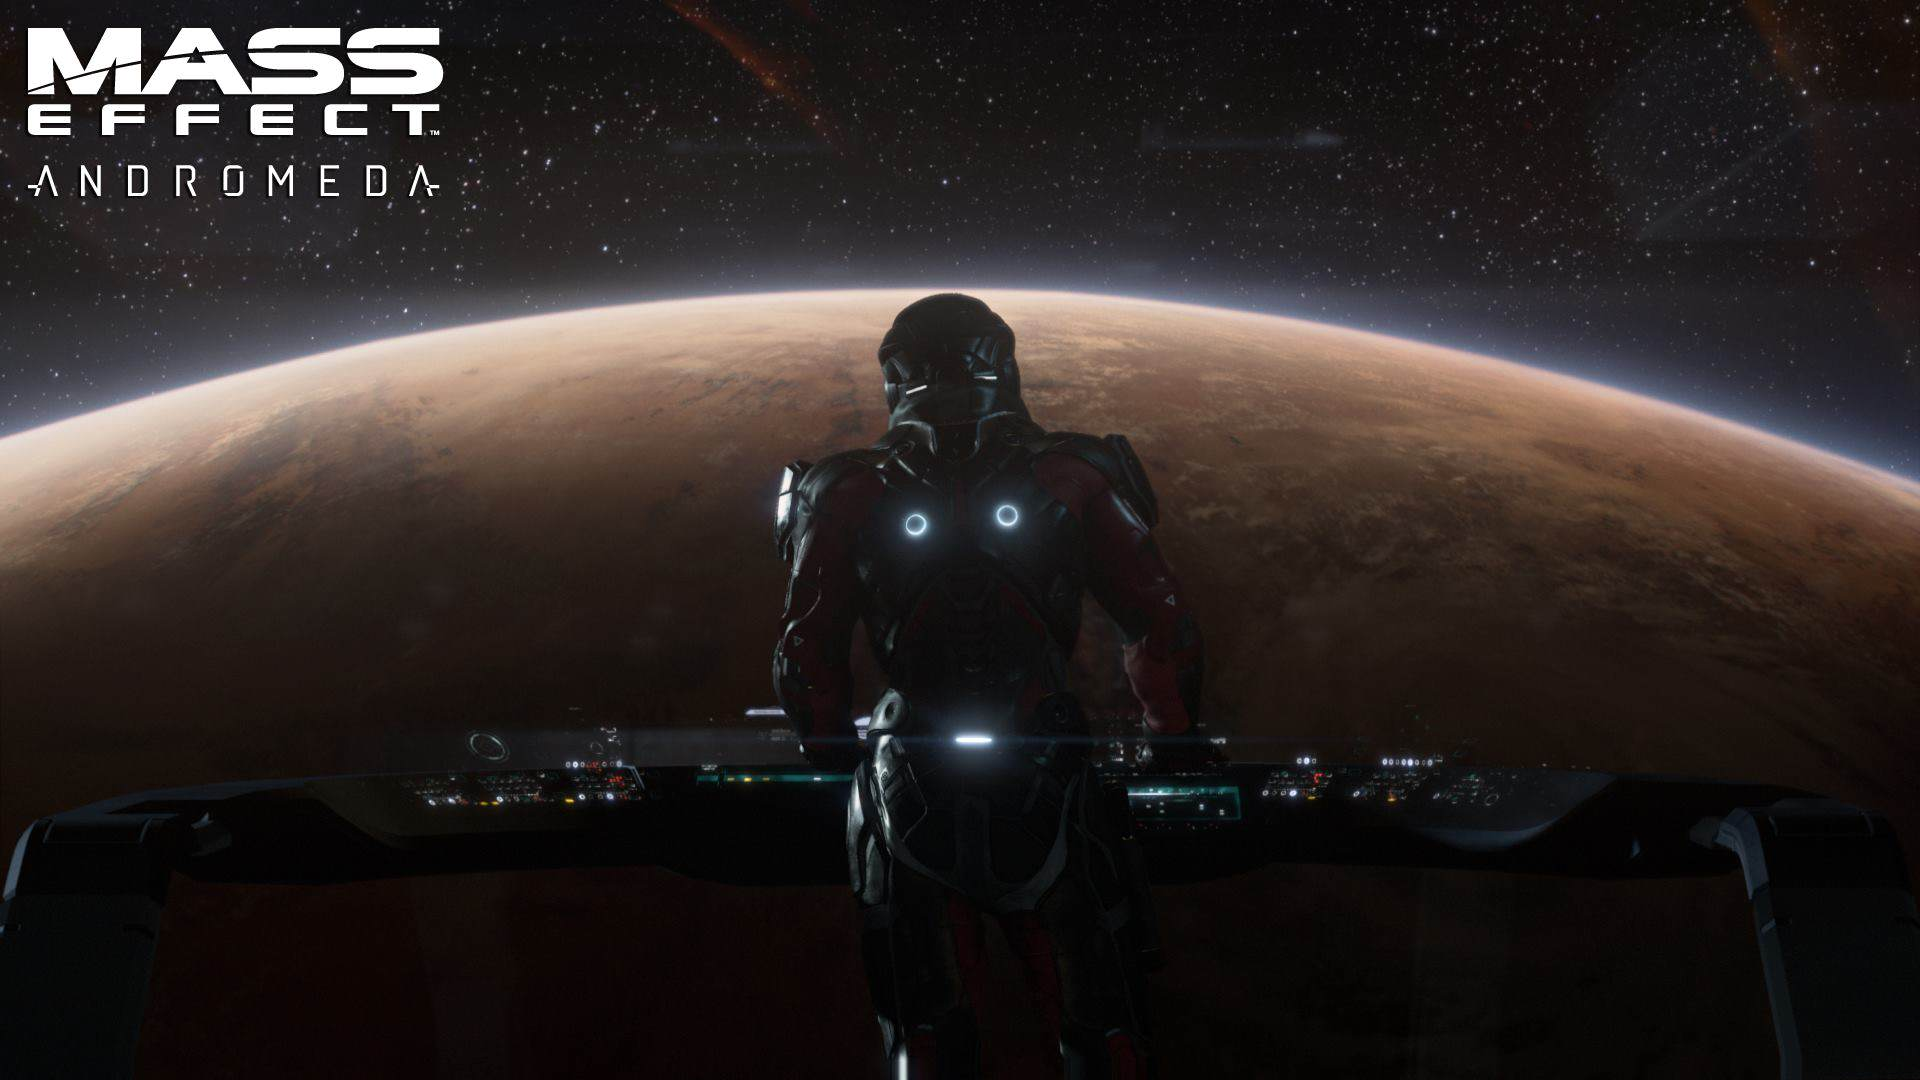 mass effect andromeda Leaked Mass Effect Andromeda Survey Holds Some Key Details